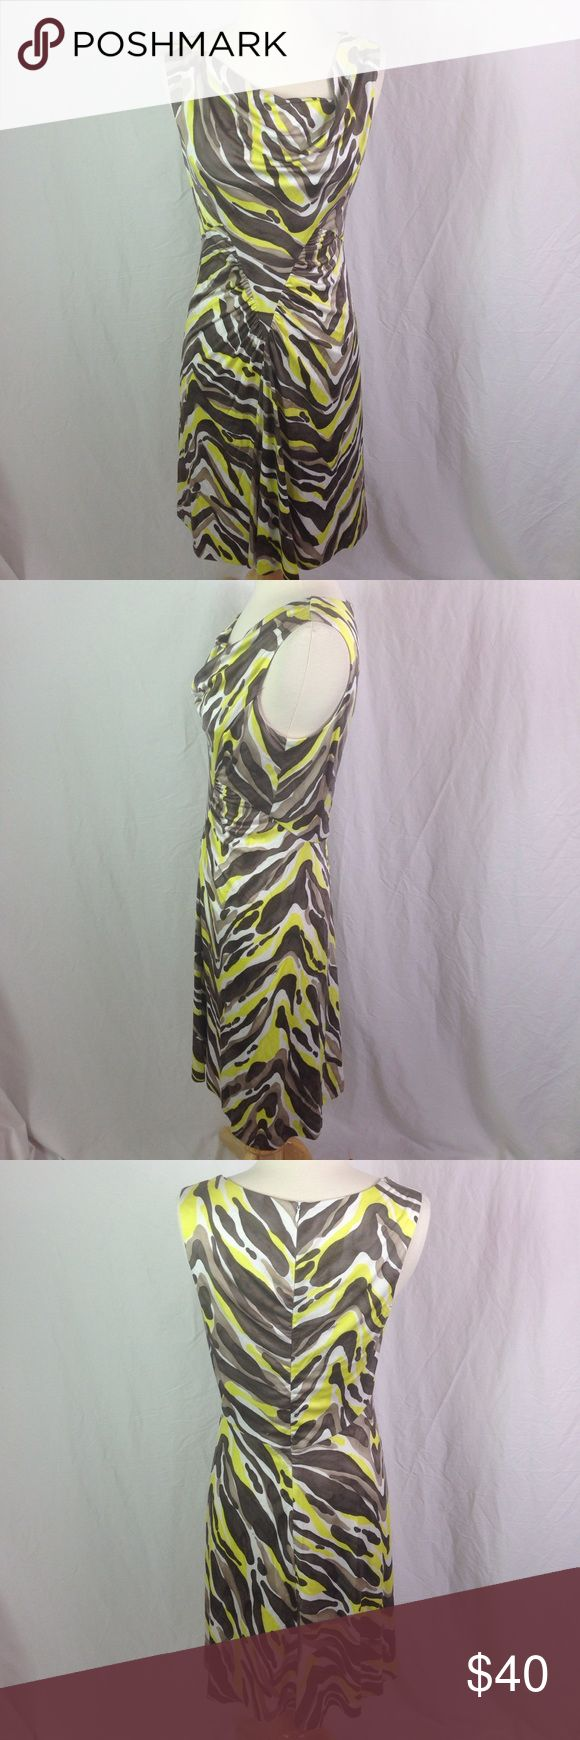 Trina Turk Ruched Silk Jersey Knit Dress Zebra Trina Turk Ruched Silk Jersey Knit Dress Zebra Stripe, but also a camouflage of brown, taupe and bright yellow. Pretty ruching on the front makes it very flattering! Please ask questions before you buy, thanks! Trina Turk Dresses Midi